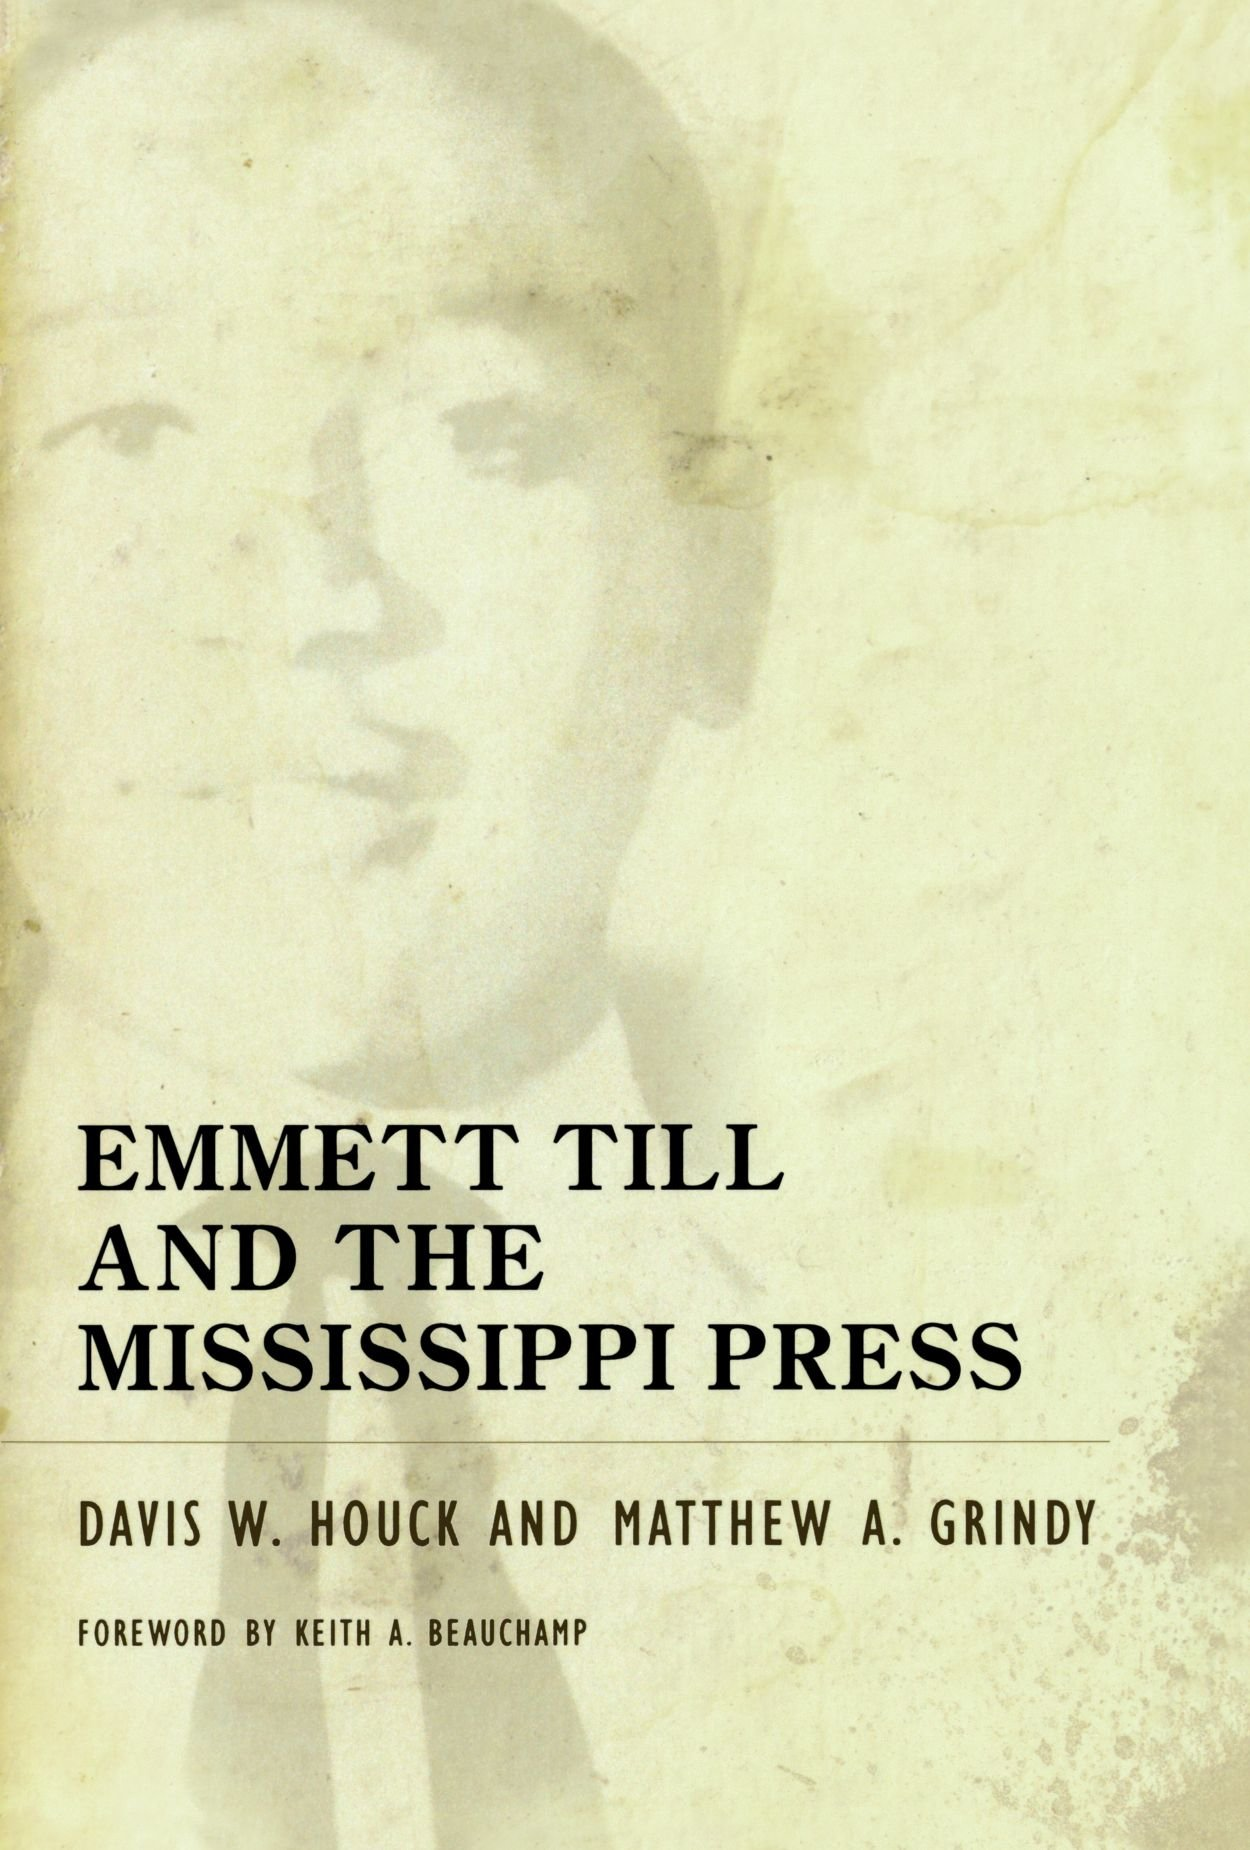 emmett till and the mississippi press davis w houck matthew a emmett till and the mississippi press davis w houck matthew a grindy keith a beauchamp 9781604738506 amazon com books